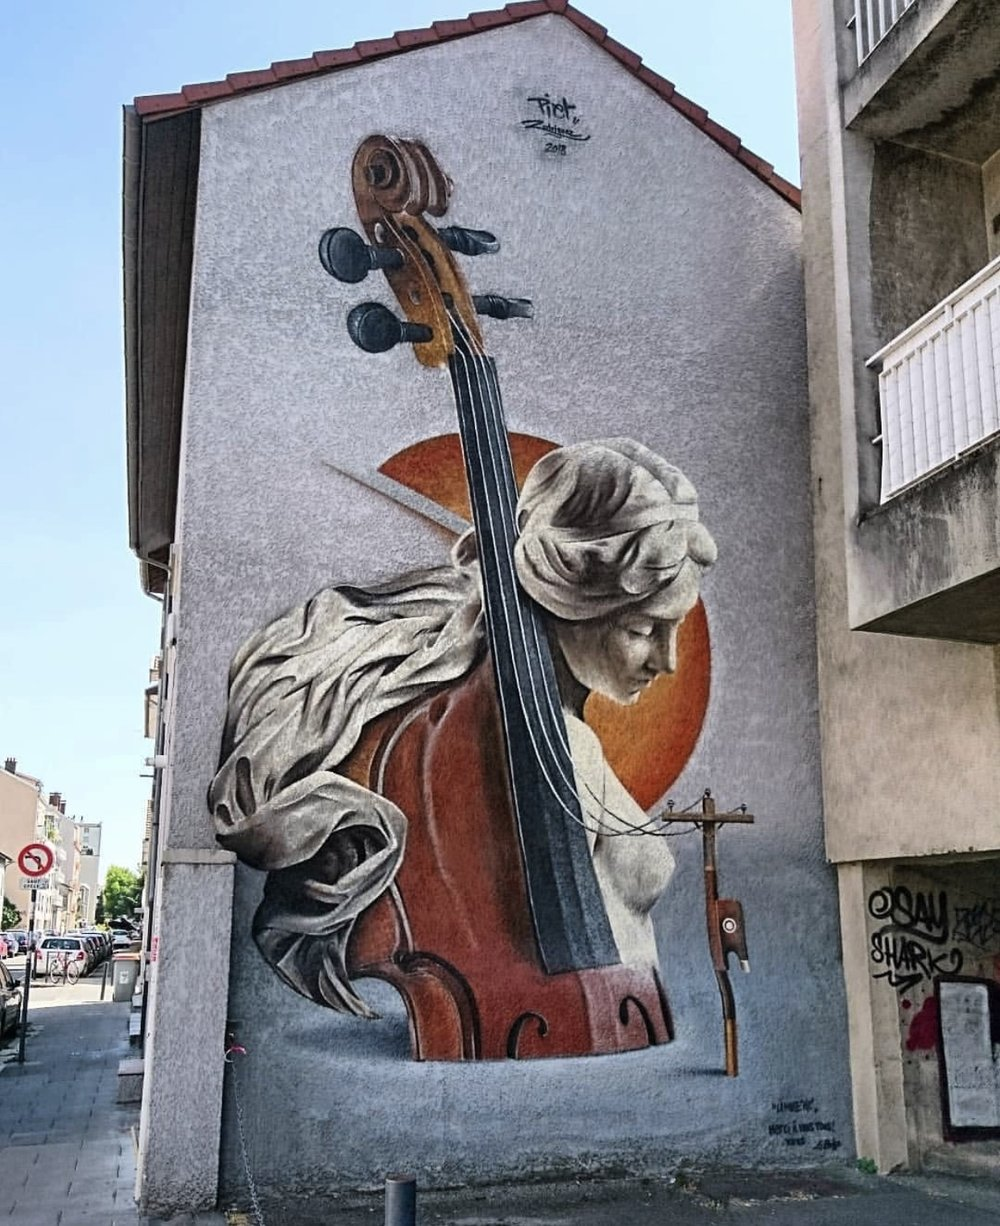 Mural by Piet Rodriguez